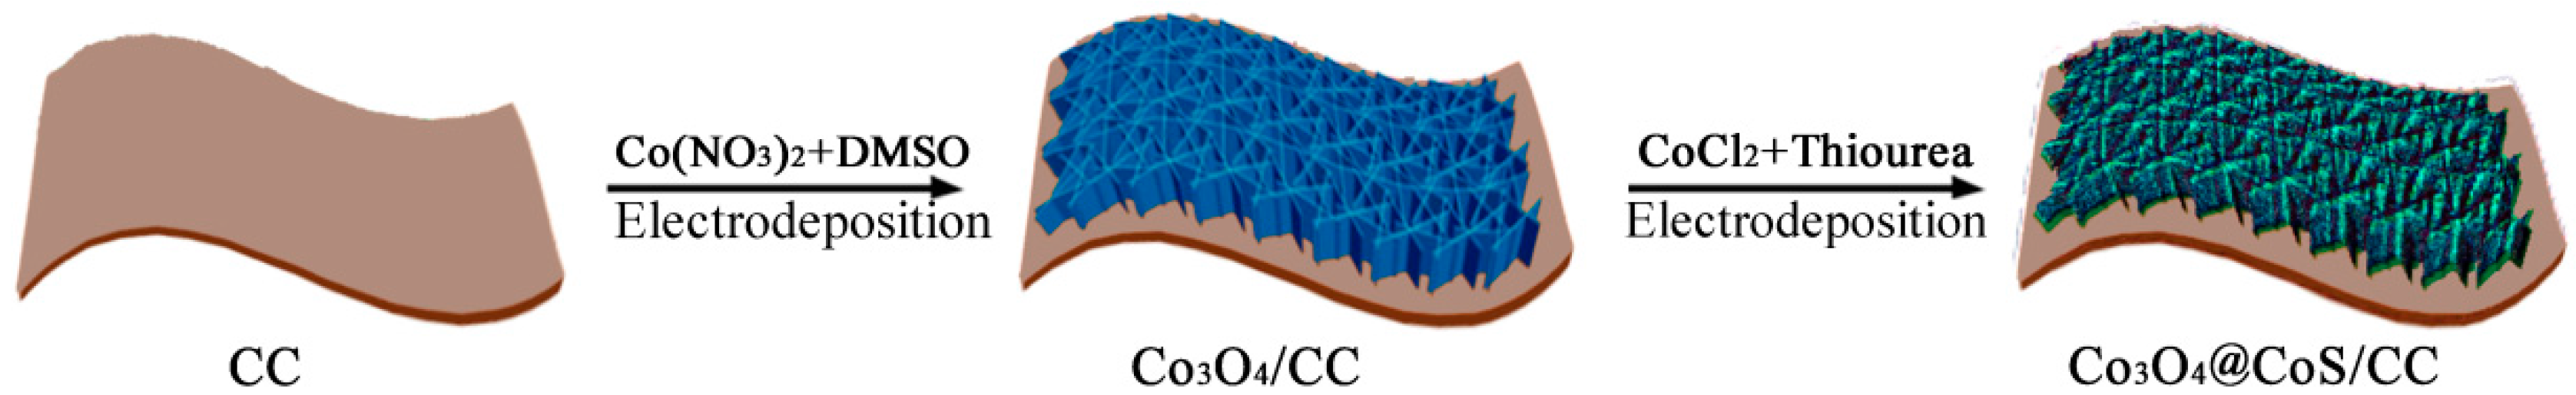 au doped co3o4 nanotubes as electrode materials Springerlink search home contact us for highly efficient electrode materials of to hybrids of nitrogen-doped porous carbon and carbon nanotubes for.